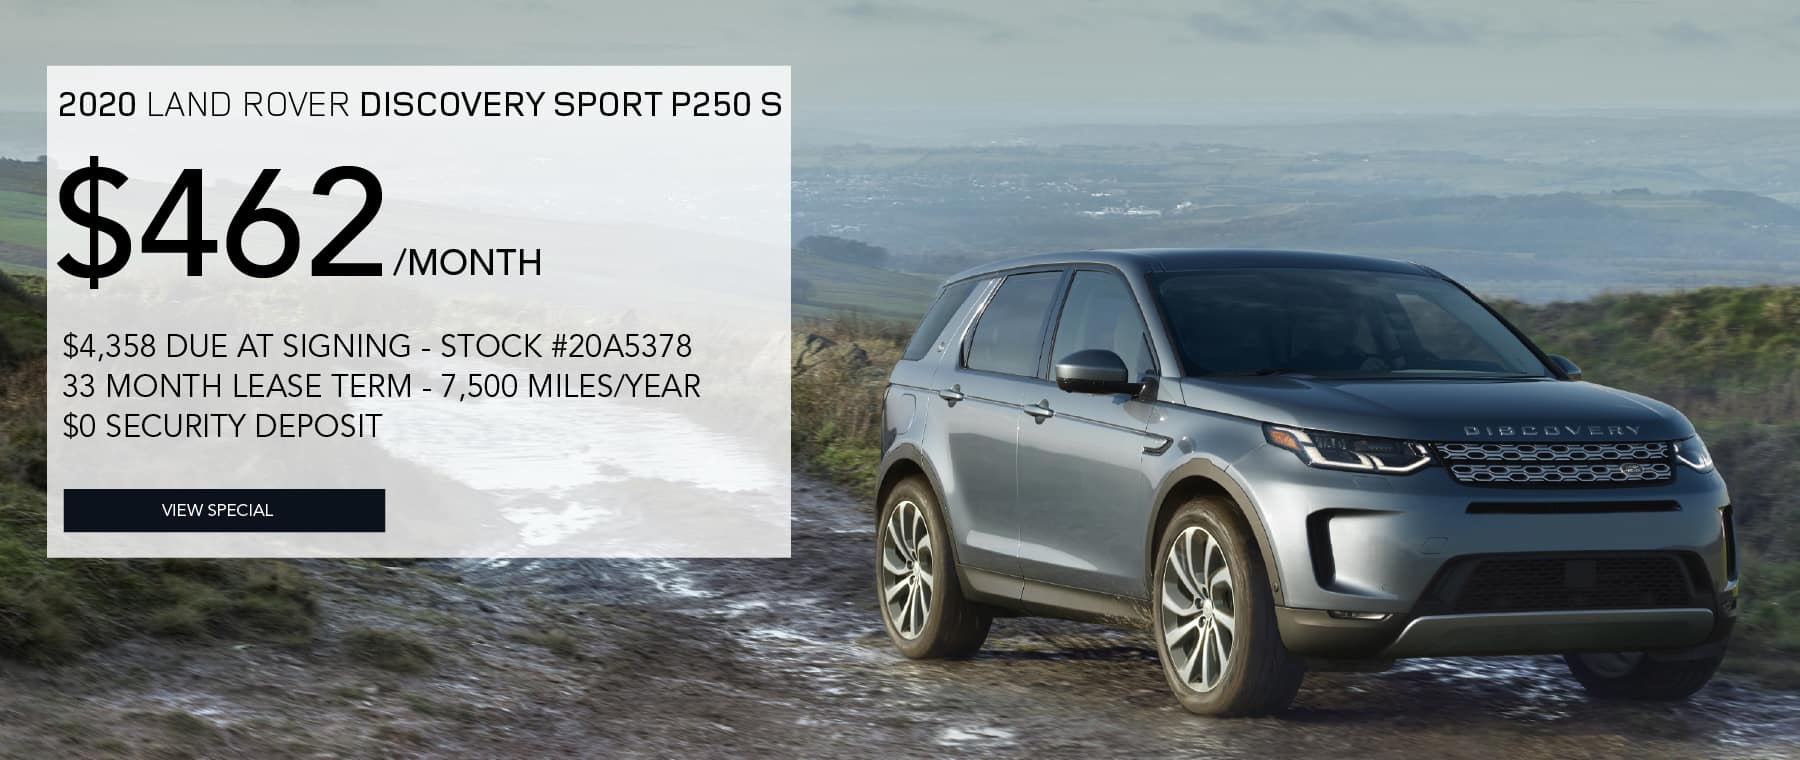 2020 LAND ROVER DISCOVERY SPORT P250 S. $462 PER MONTH FOR 33 MONTHS. $4,358 DUE AT SIGNING. STOCK #20A5378. 7,500 MILES/YEAR. $0 SECURITY DEPOSIT. VIEW SPECIAL. LIGHT BLUE LAND ROVER DISCOVERY SPORT DRIVING DOWN DIRT ROAD.